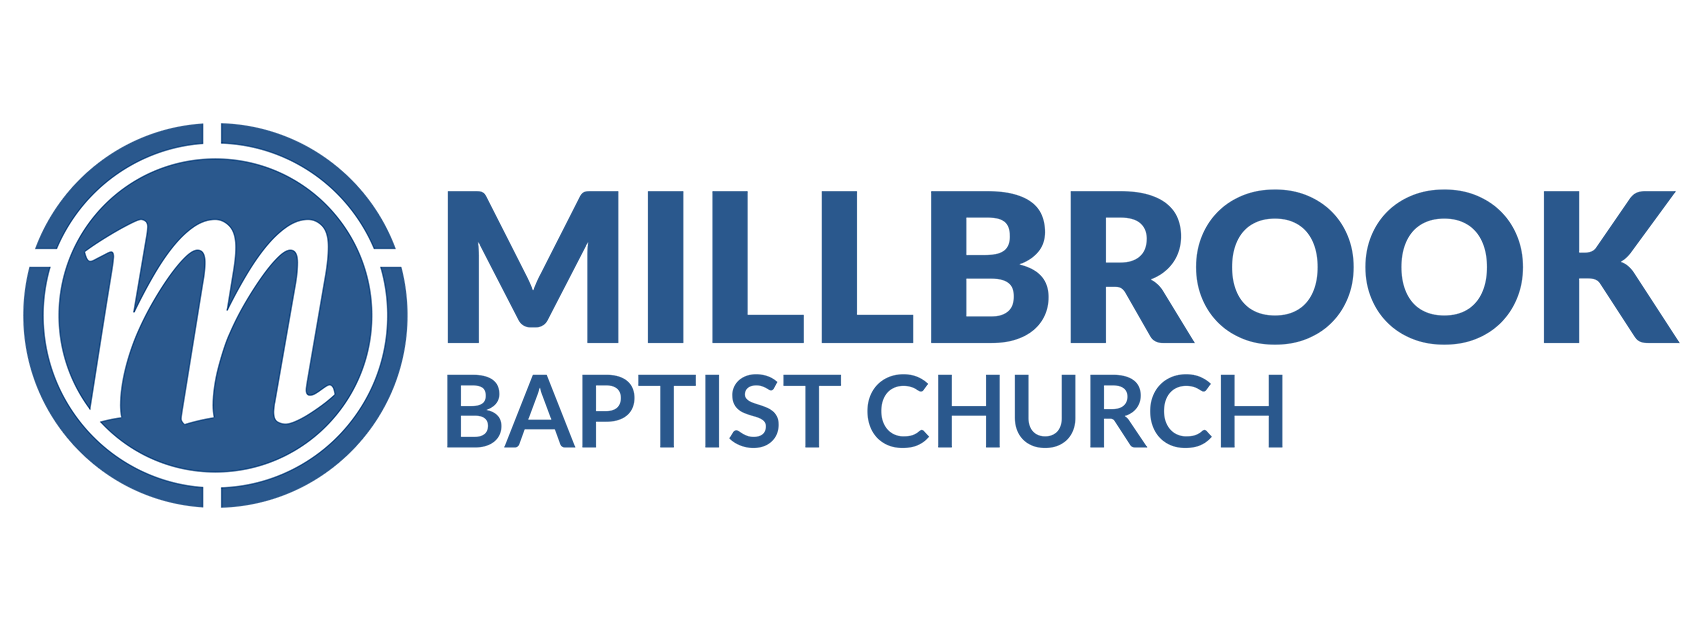 If You Are Interested In Learning More About Millbrook Baptist Church Or Becoming A Member Please Make Plans To Attend This Luncheon